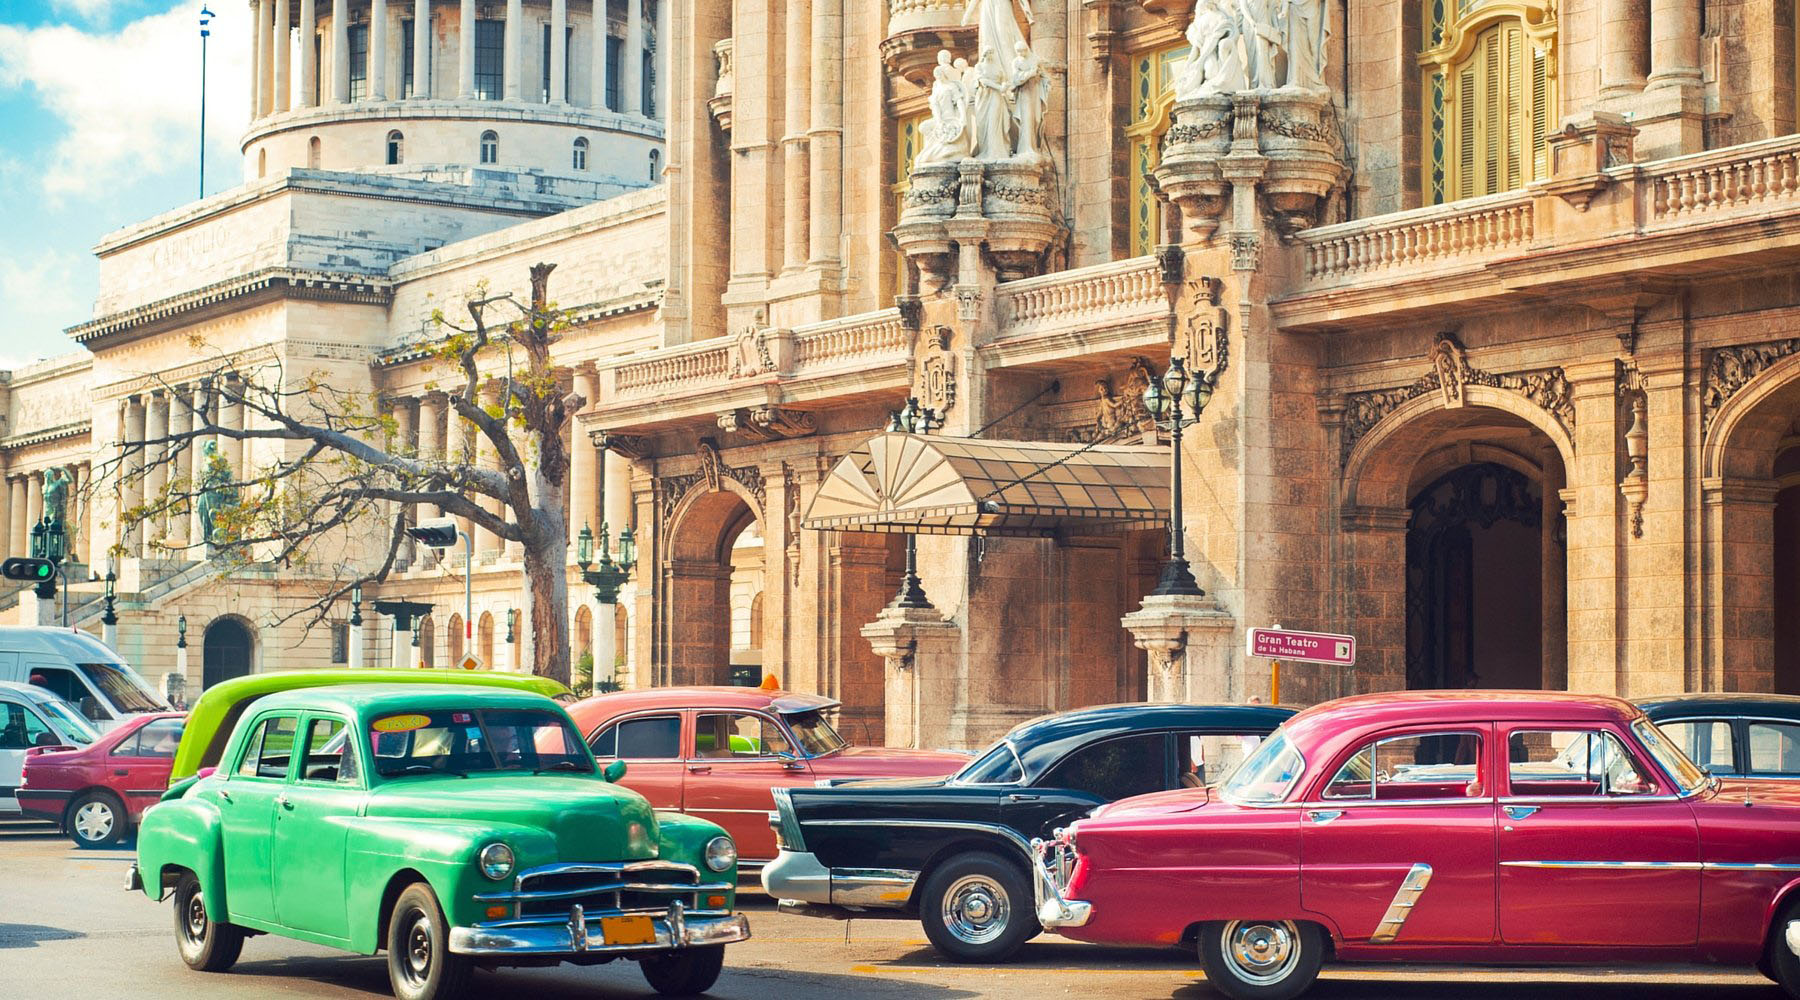 The Best Way To Travel To Cuba Is By Cruise